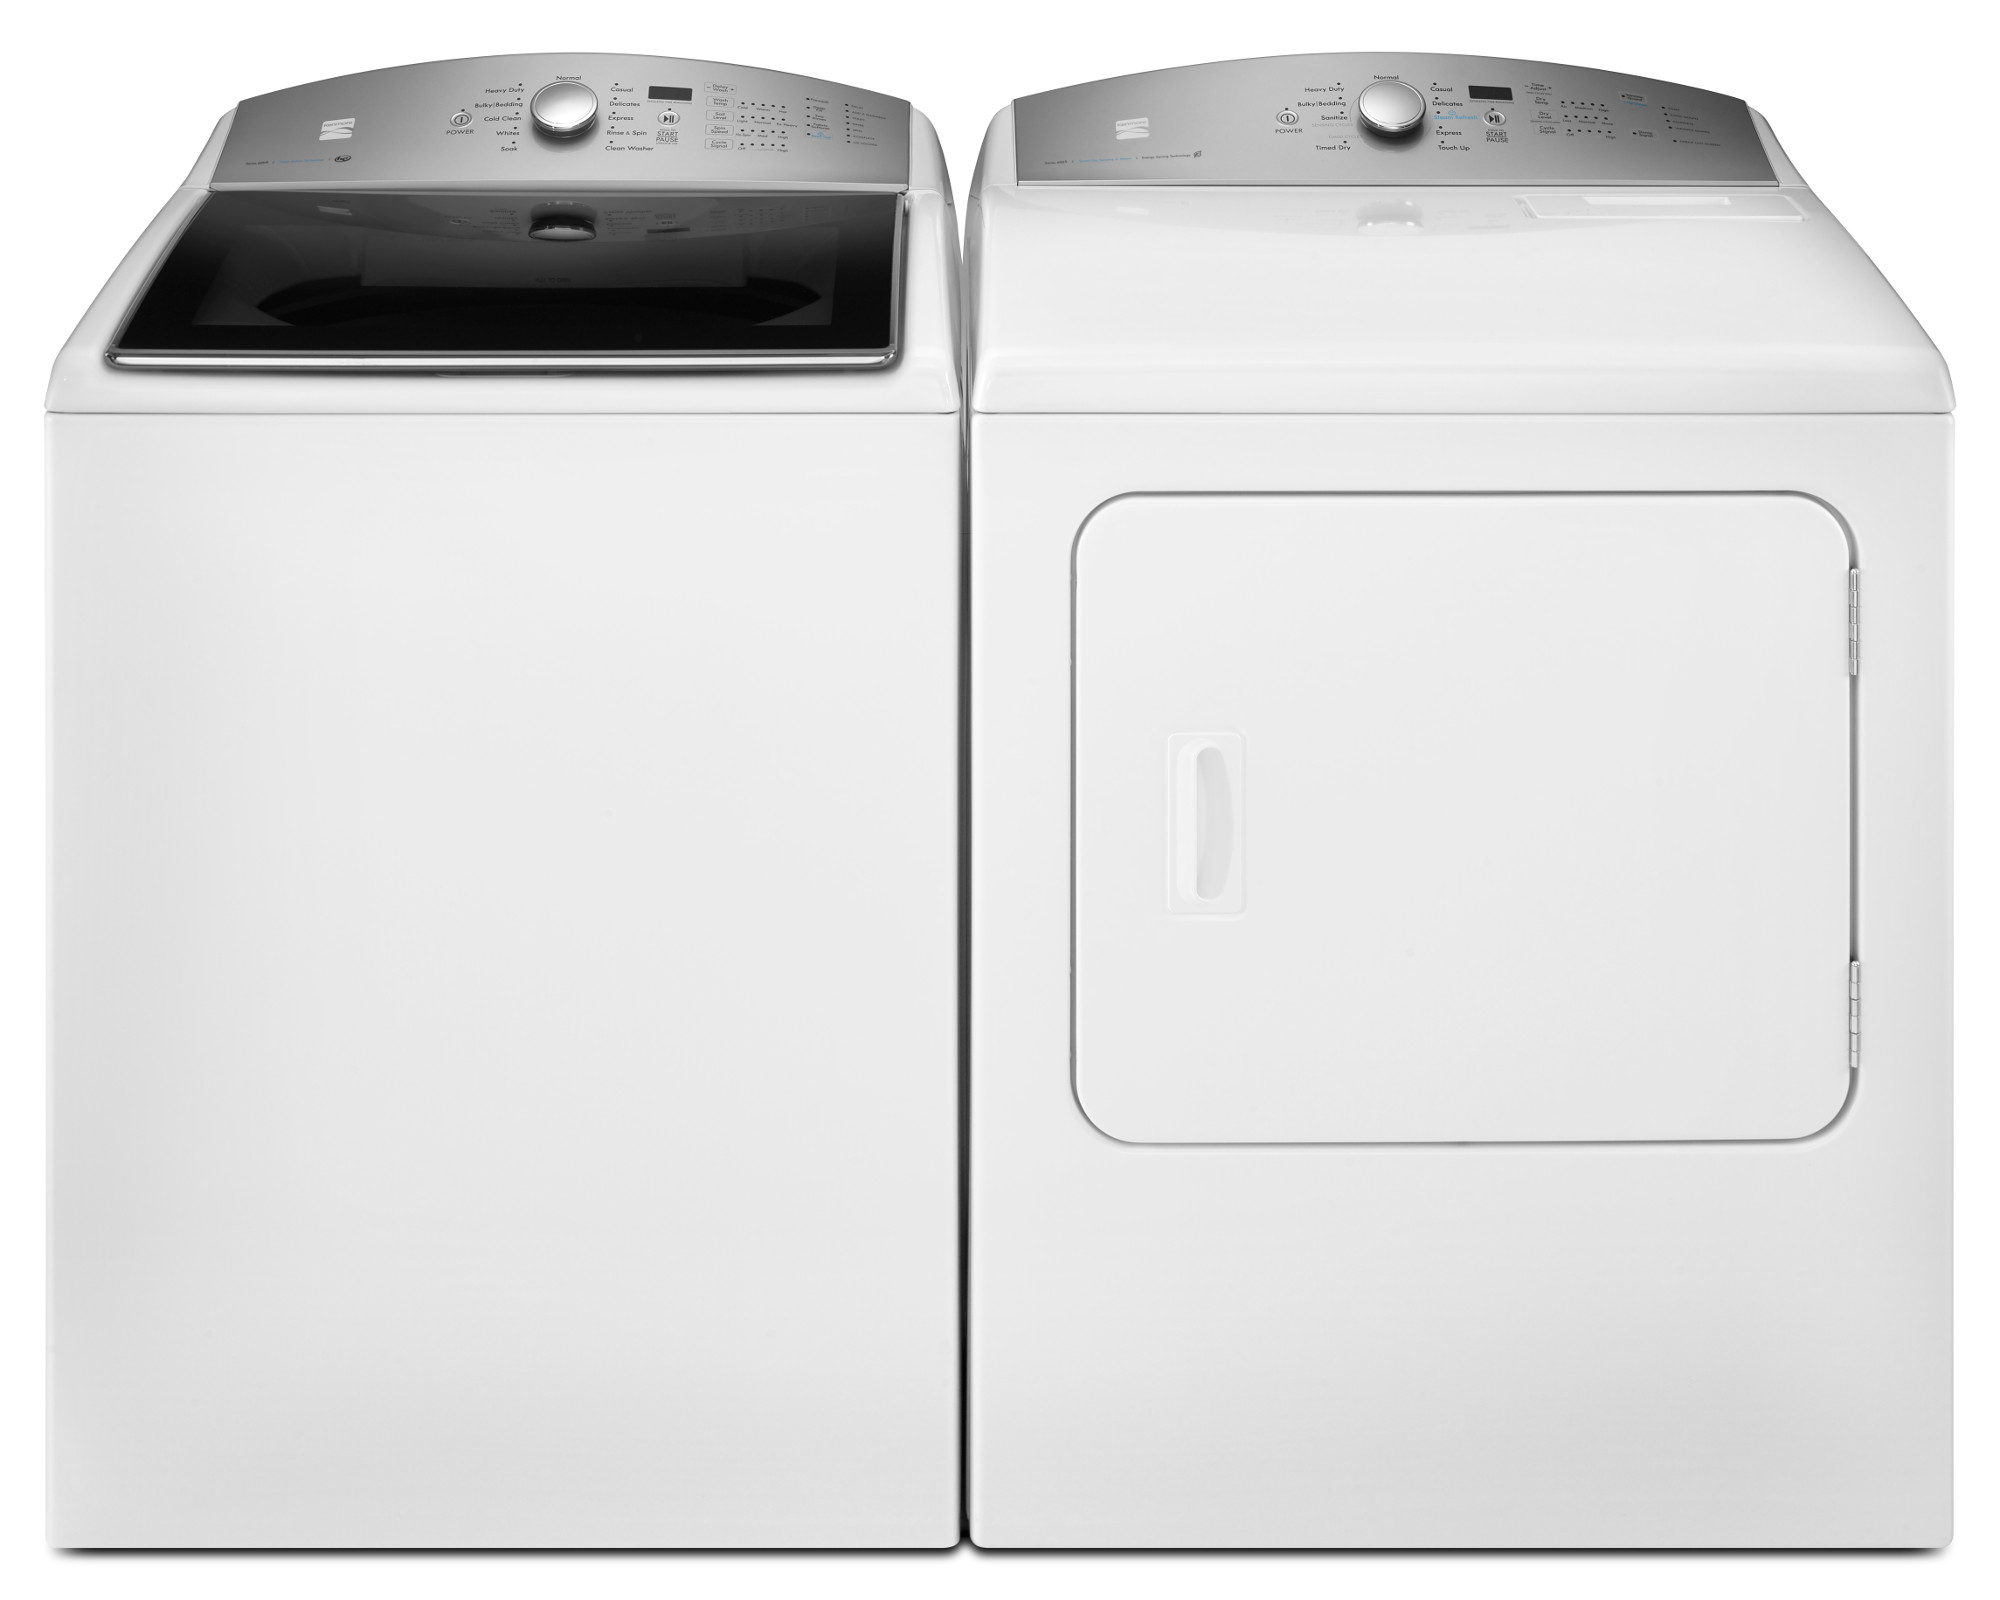 4.8 cu. ft. Top Load Washer & 7.0 cu. ft. Dryer - White